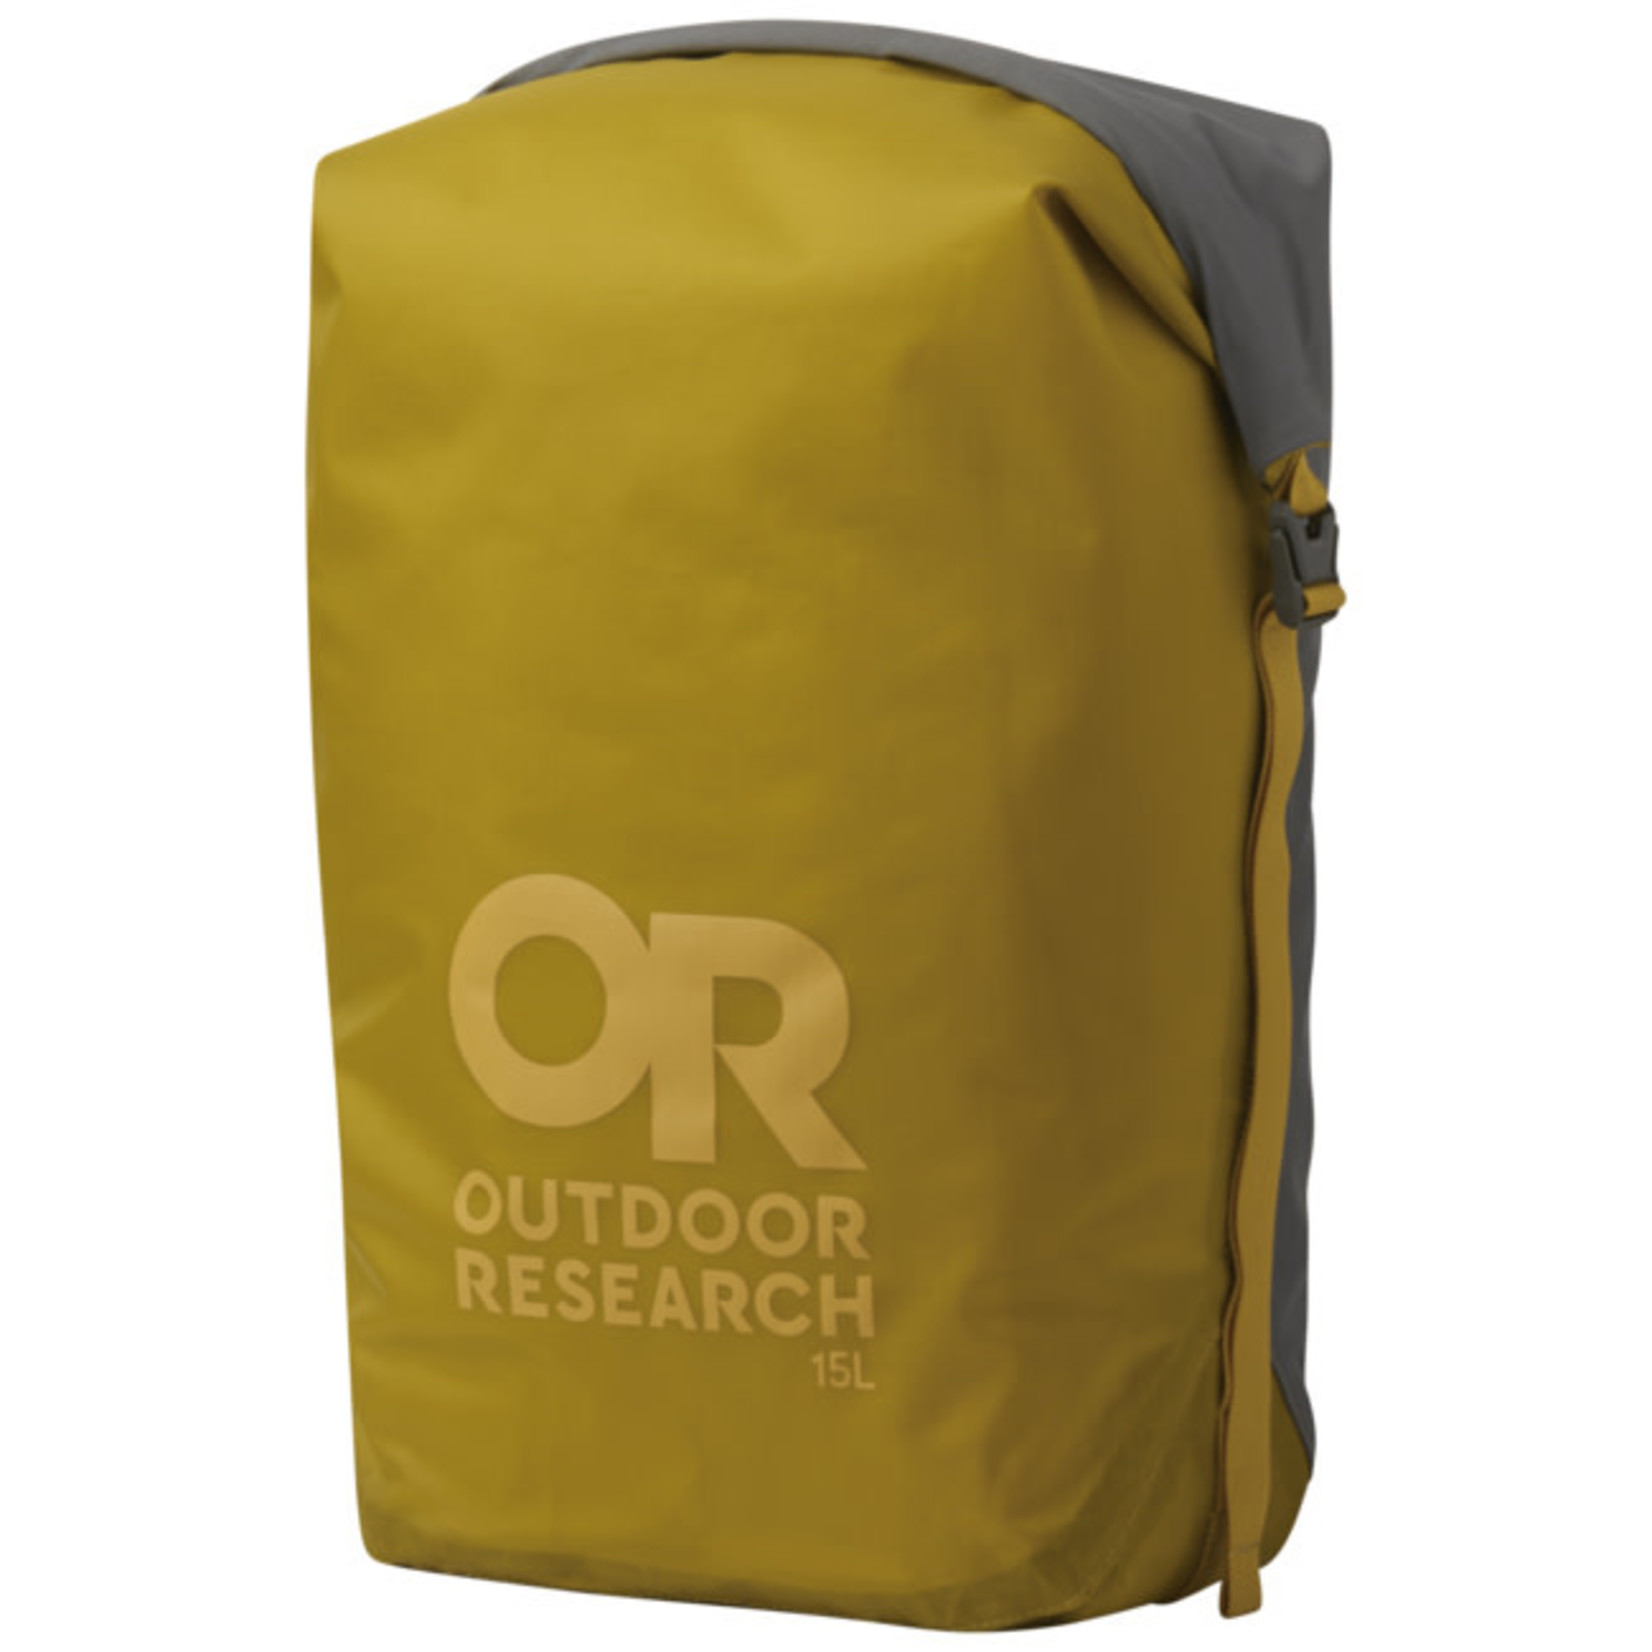 Outdoor Research CarryOut Airpurge Compression Dry Bag